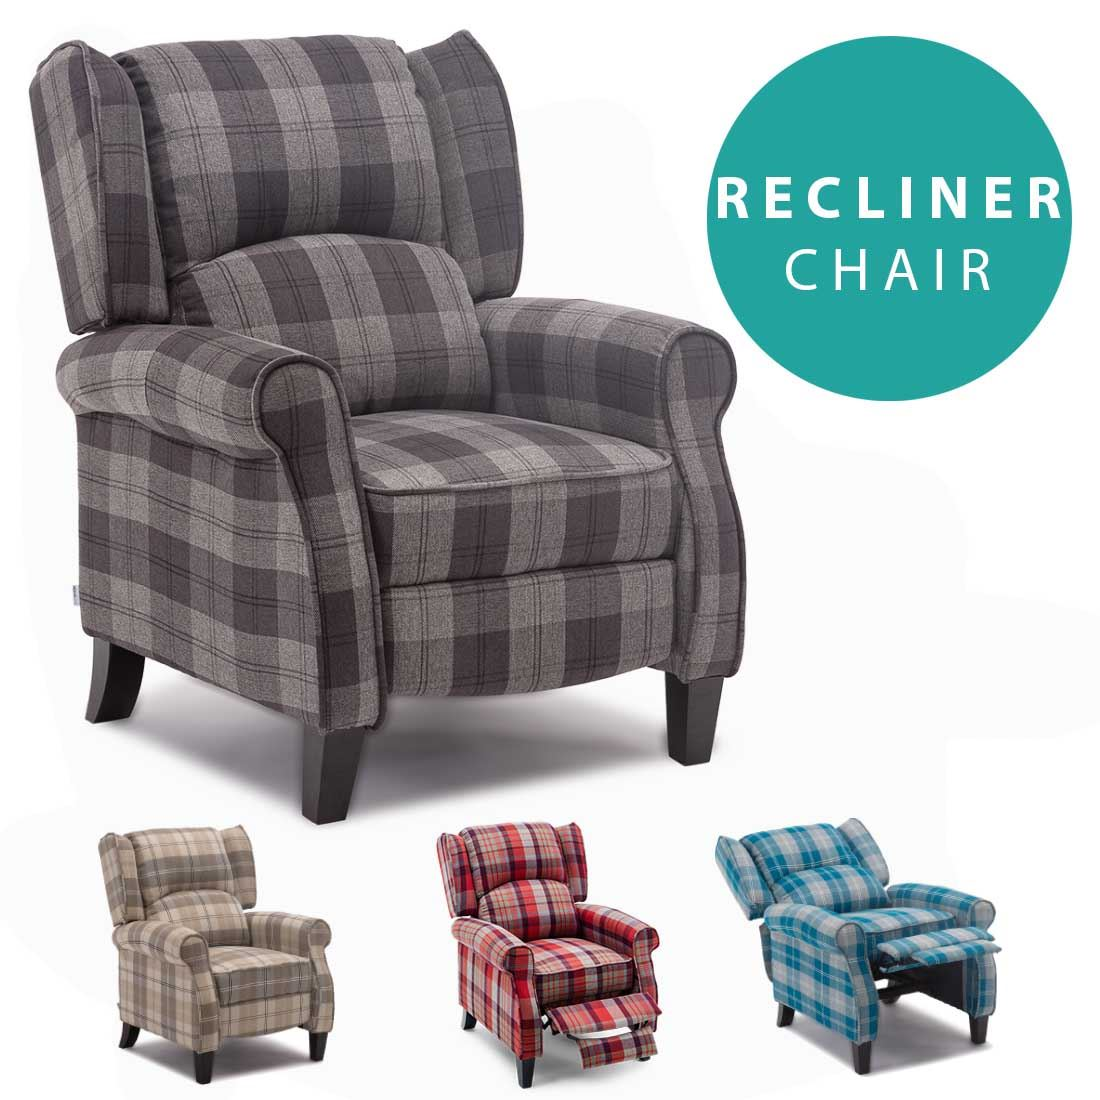 Eaton wing back fireside check fabric recliner armchair sofa lounge cinemo chair